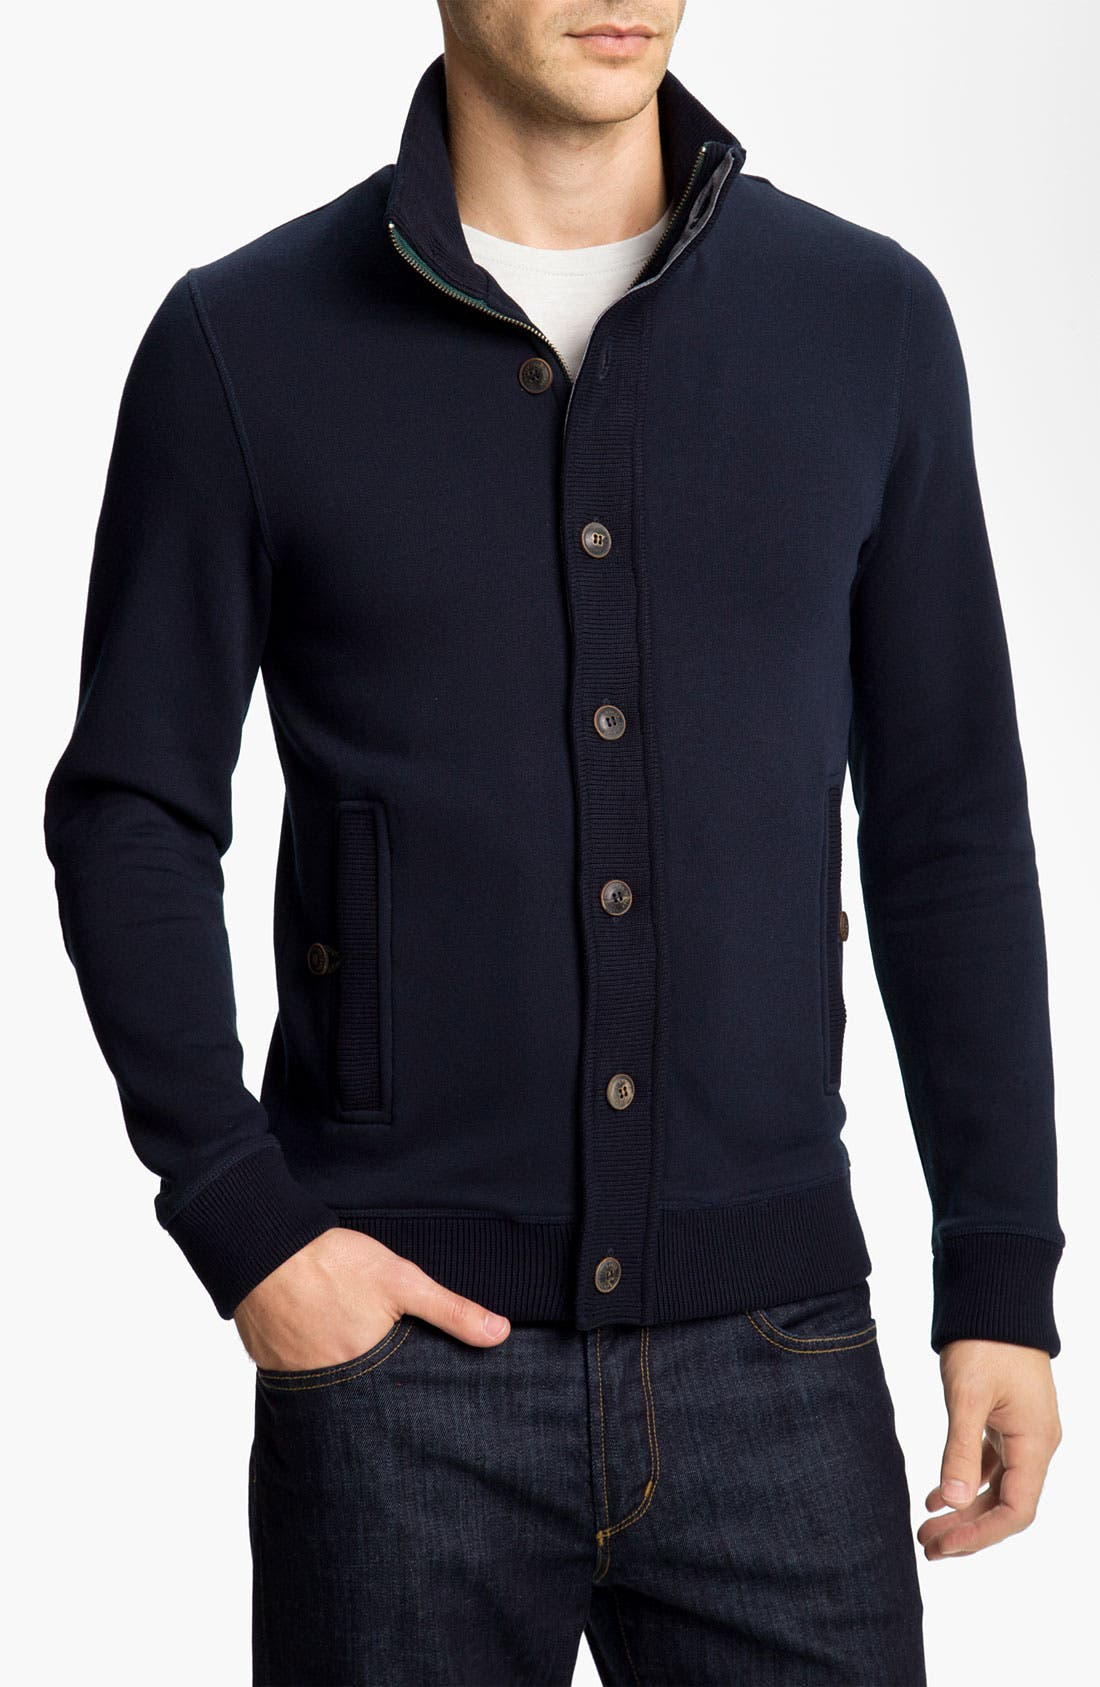 Main Image - Ted Baker London 'Nordman' Sweatshirt Cardigan